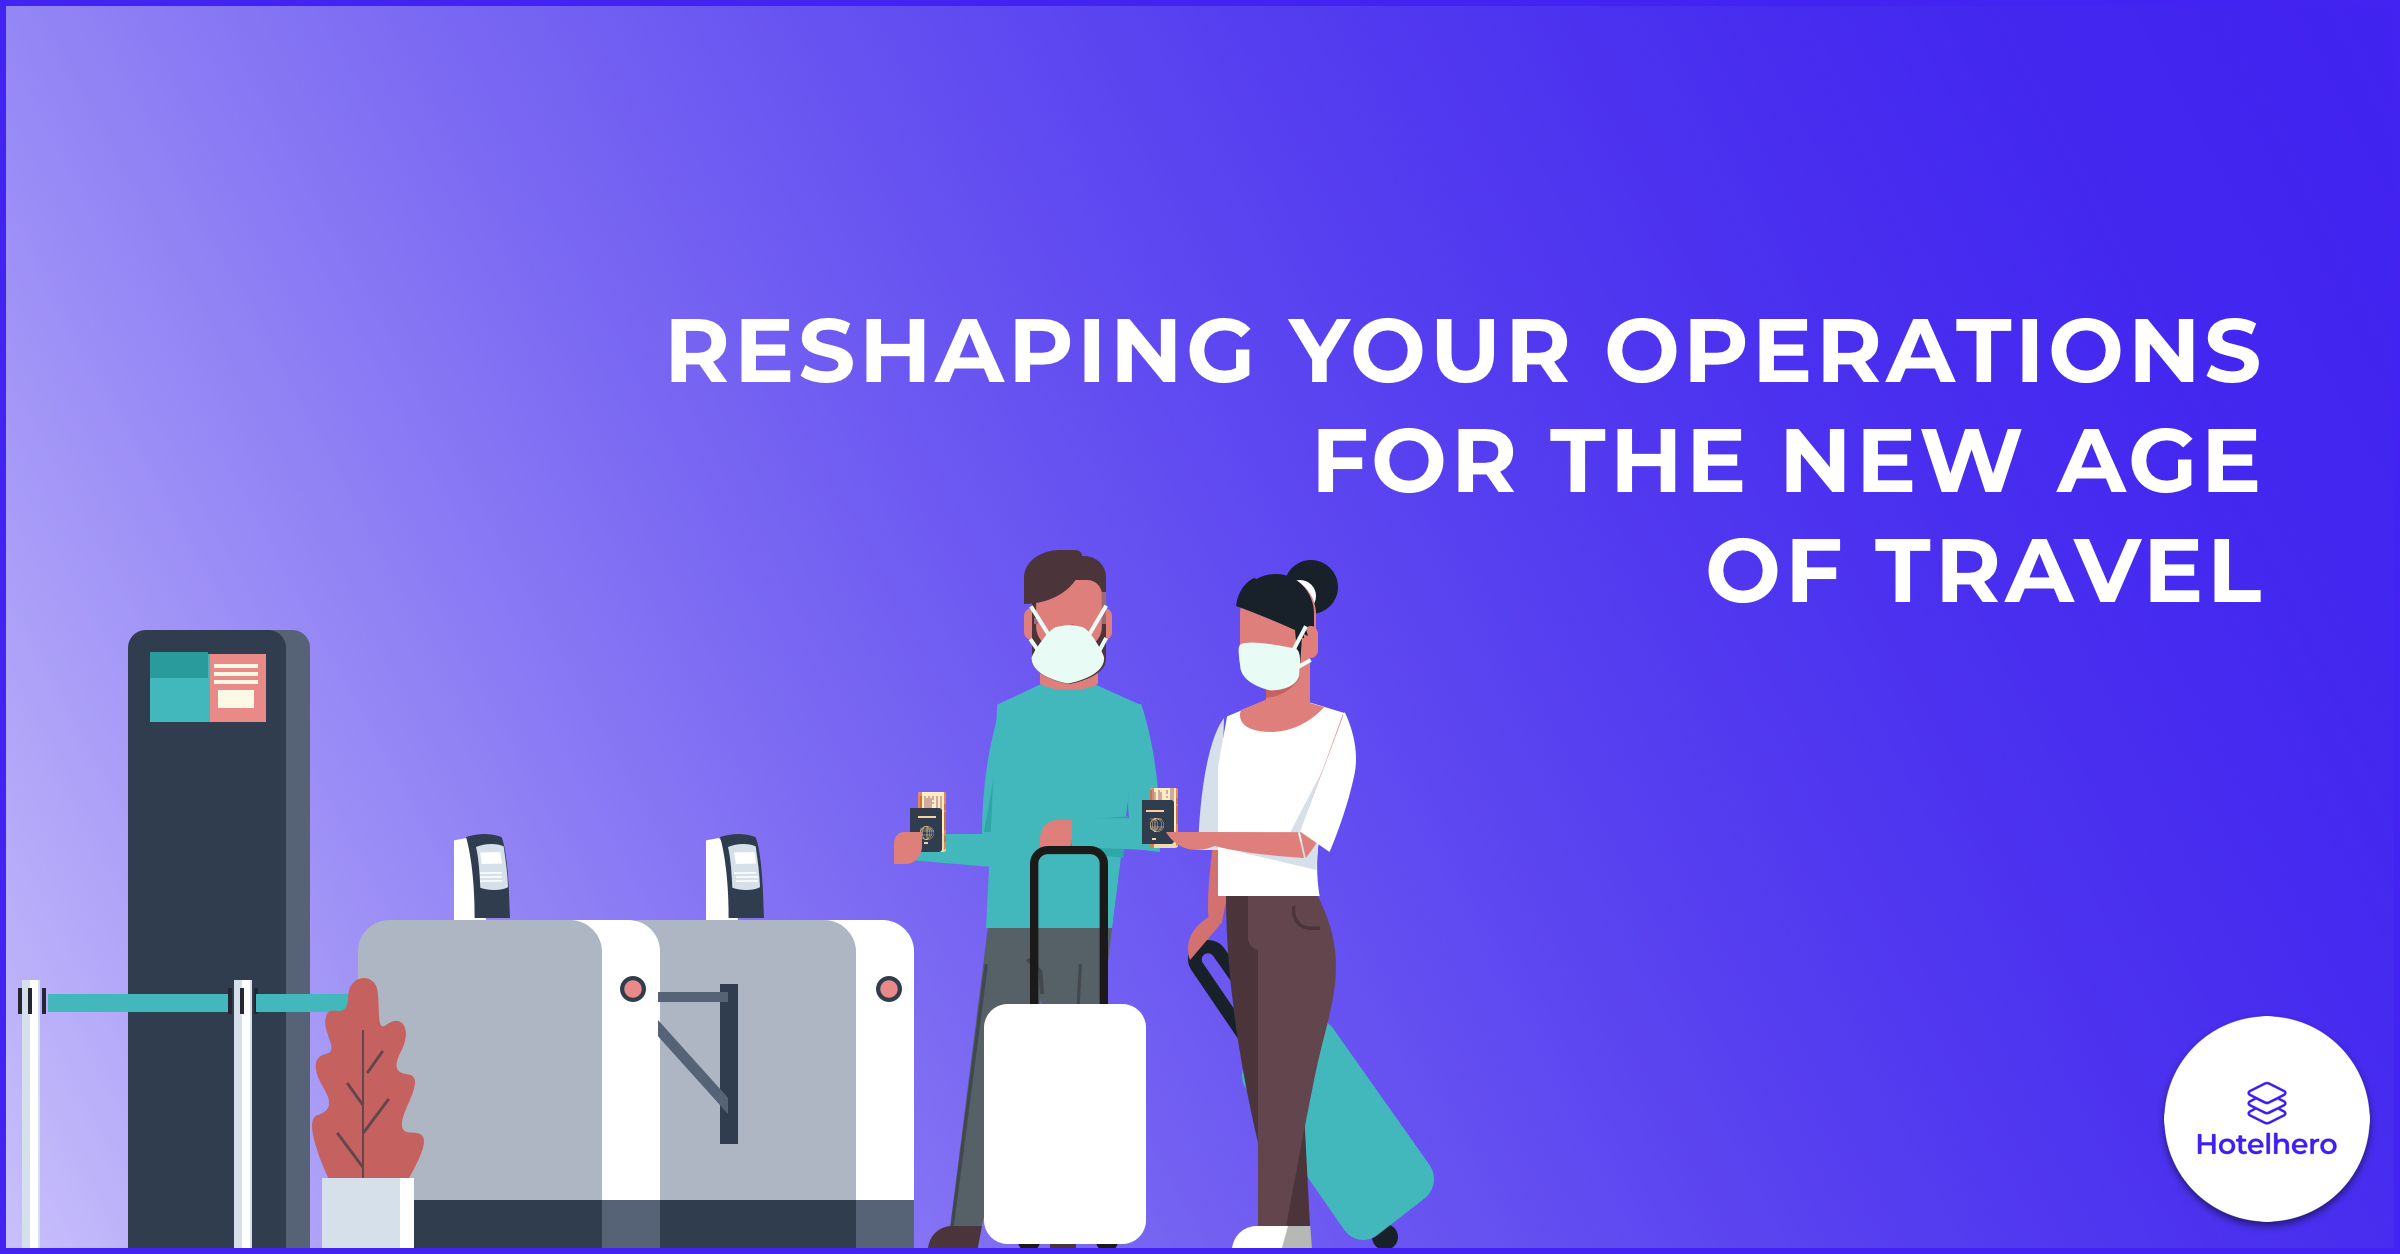 Reshaping your operations for the new age of travel